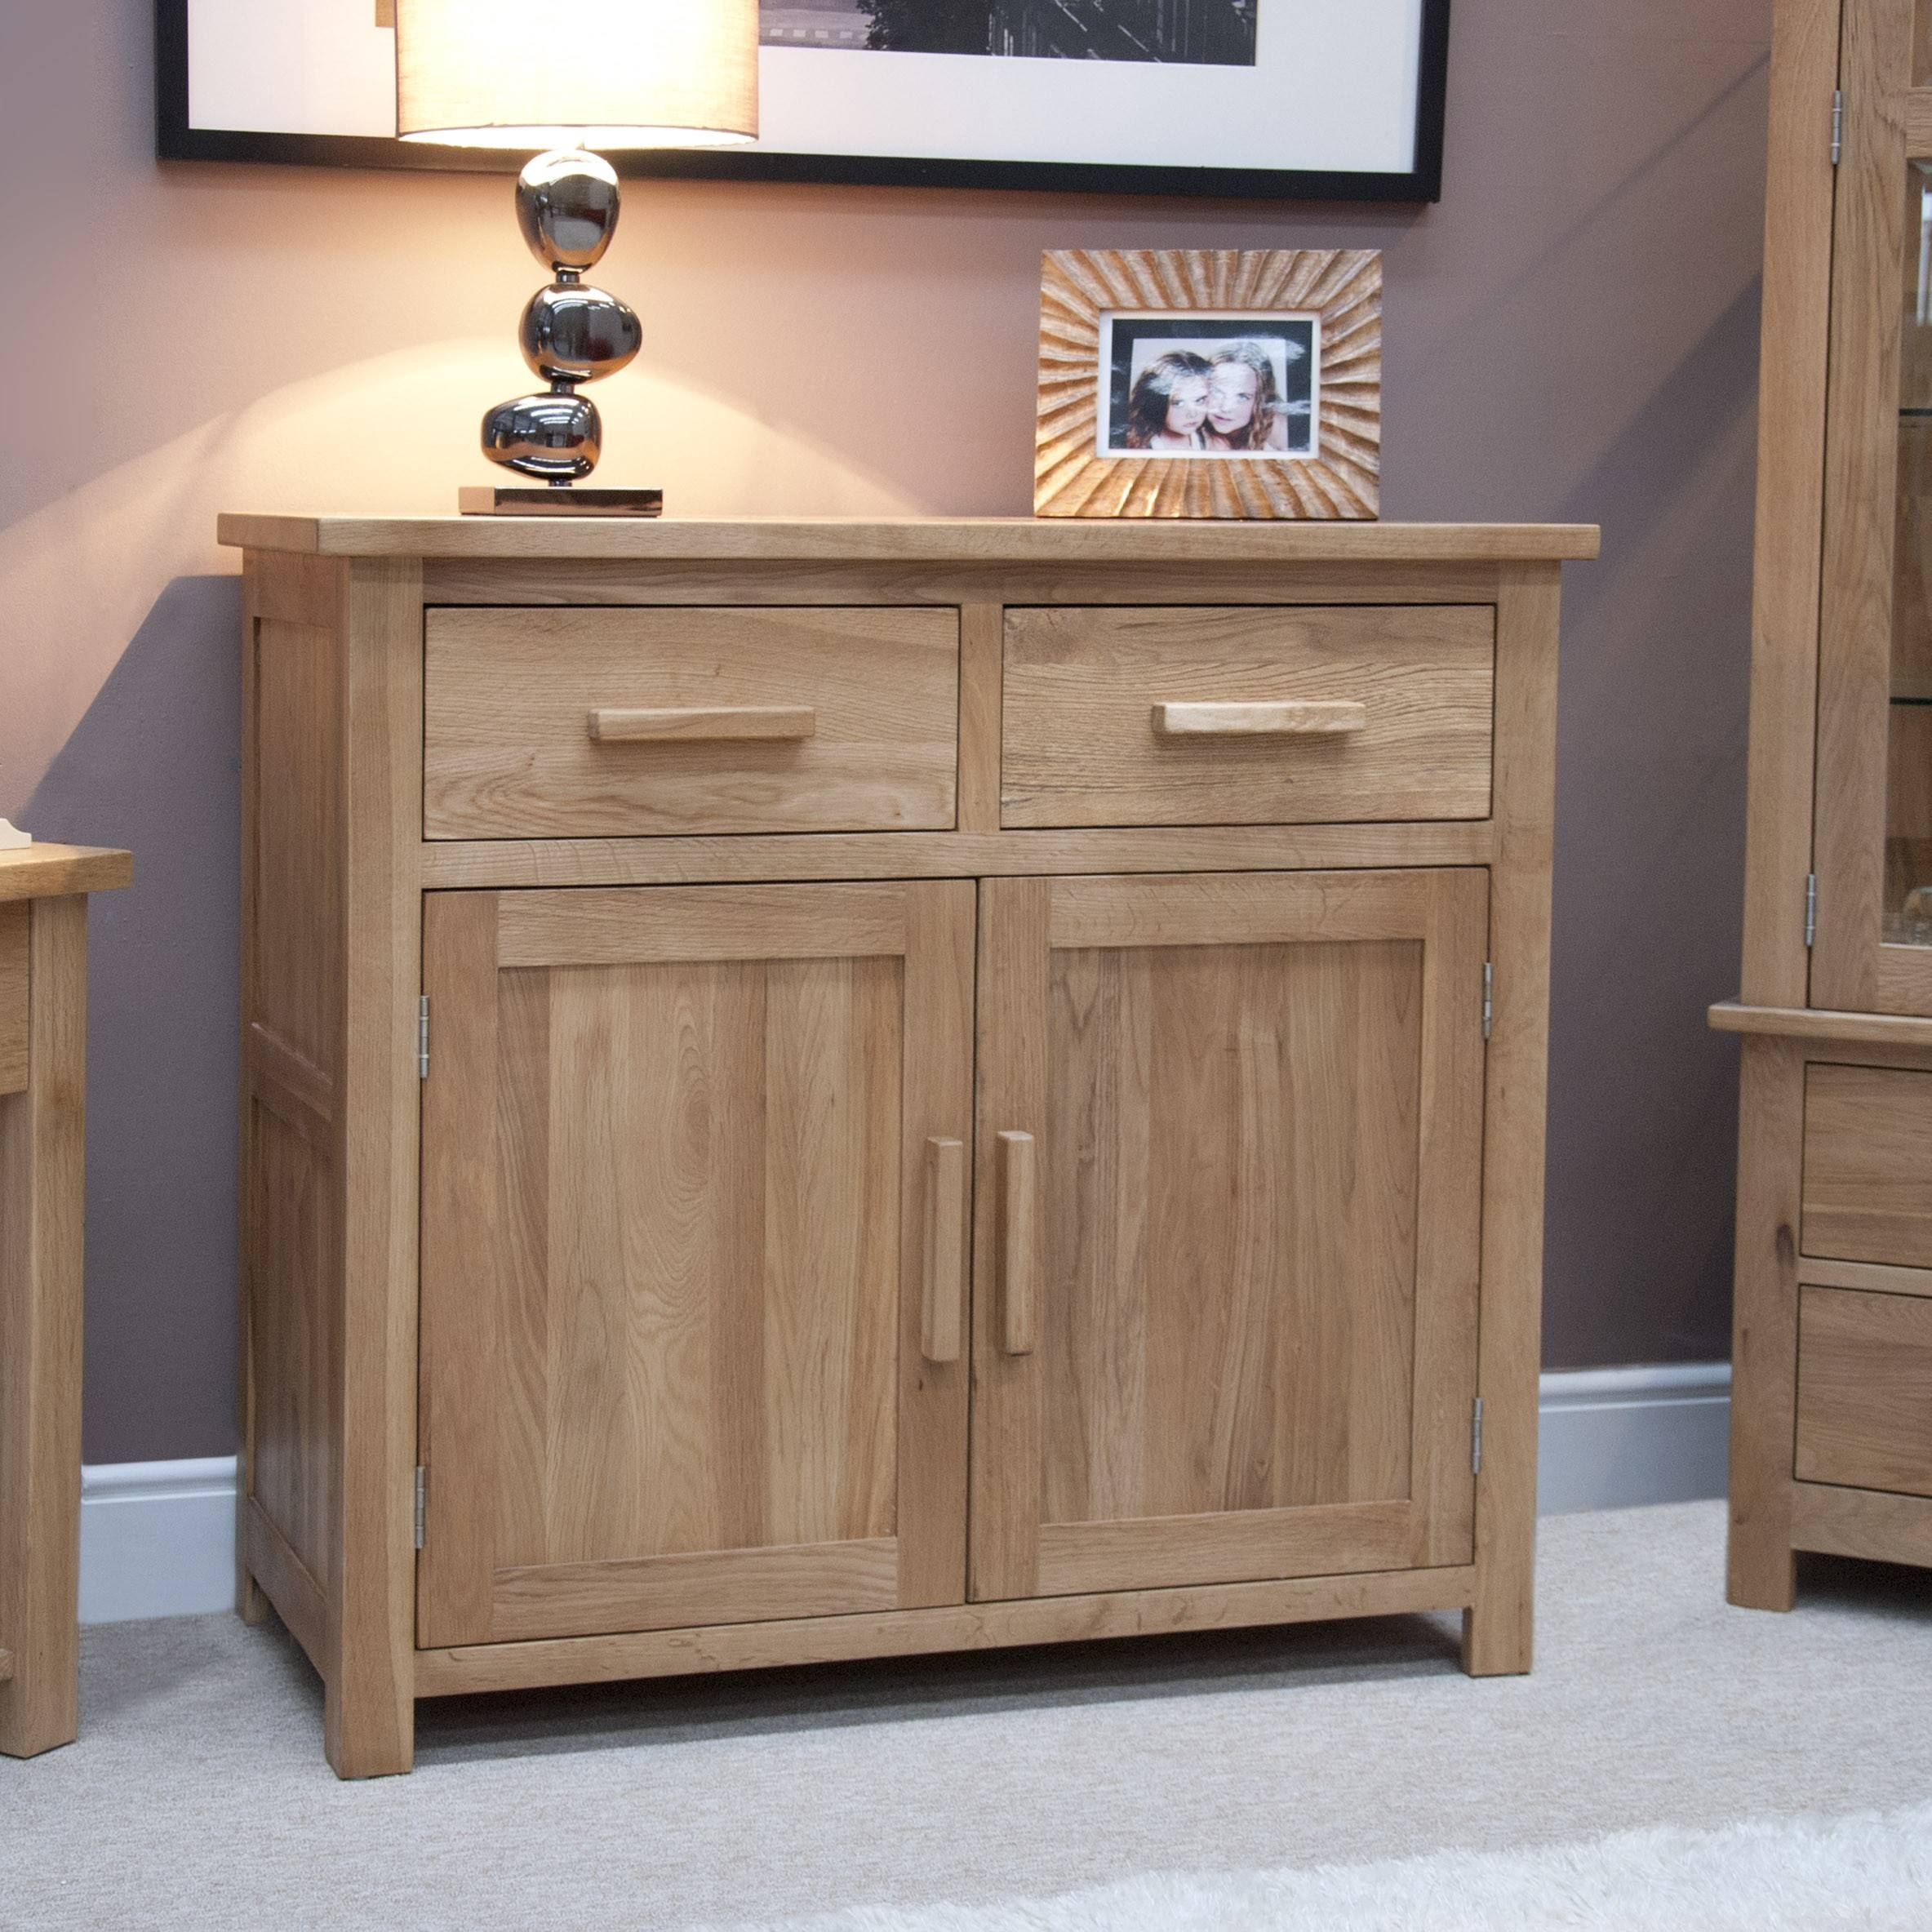 Opus Oak Furniture Small Sideboard | Furniture4Yourhome Throughout Small Sideboards (View 10 of 30)